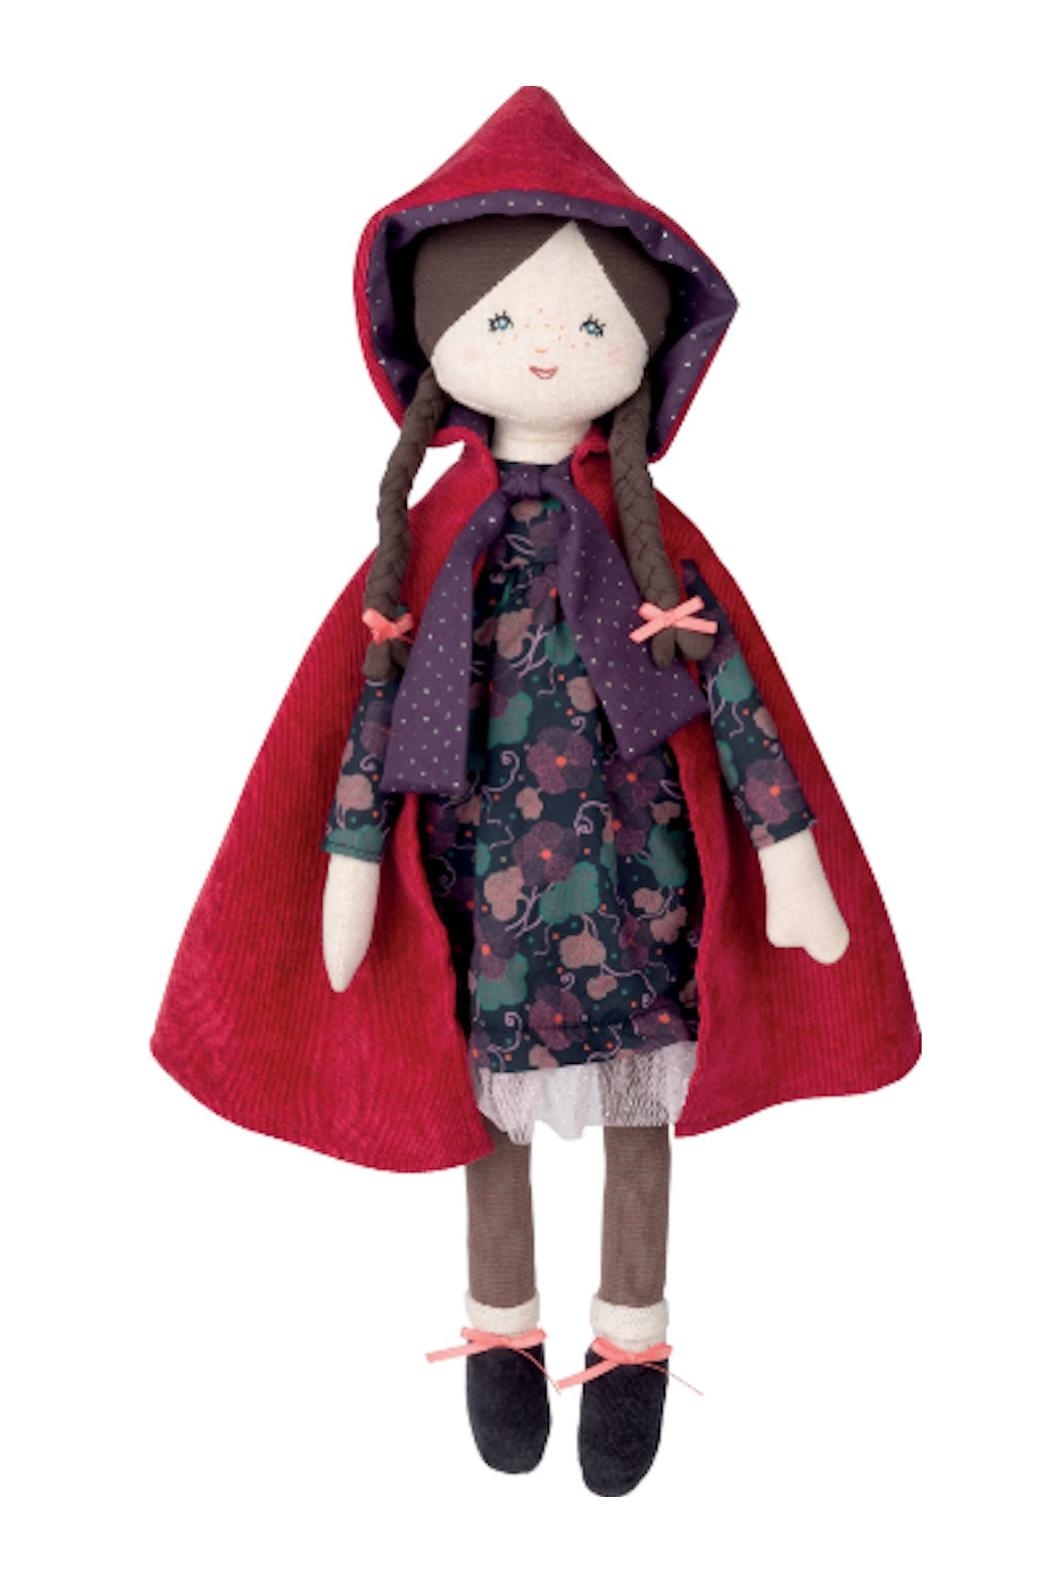 Moulin Roty Red Riding Doll - Main Image